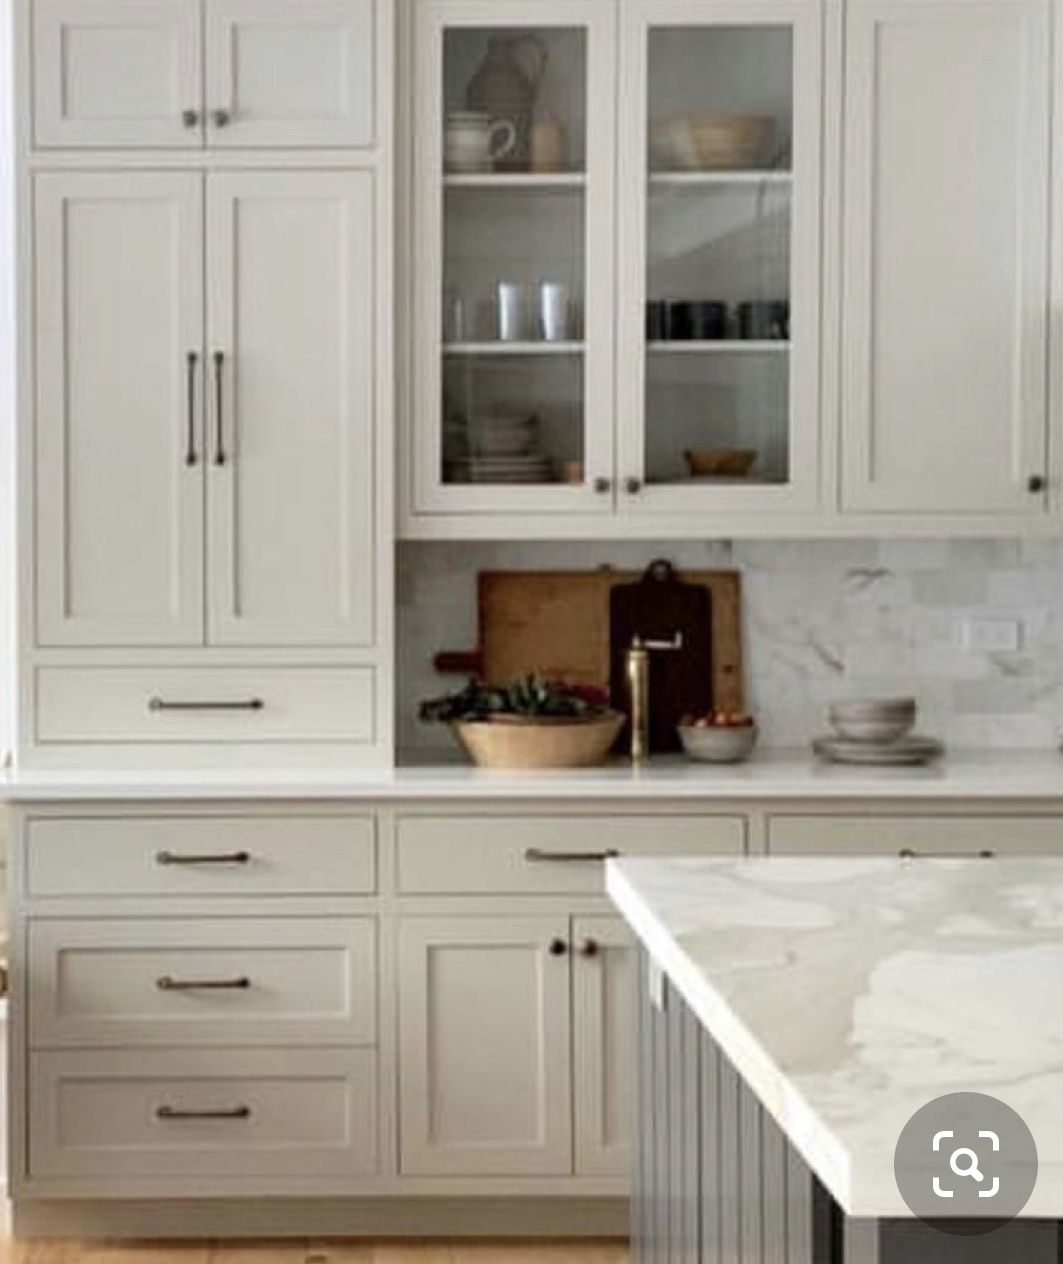 Pin By Cathy Anderson On Kitchen In 2020 Home Kitchens Home Decor Kitchen Marble Kitchen Island